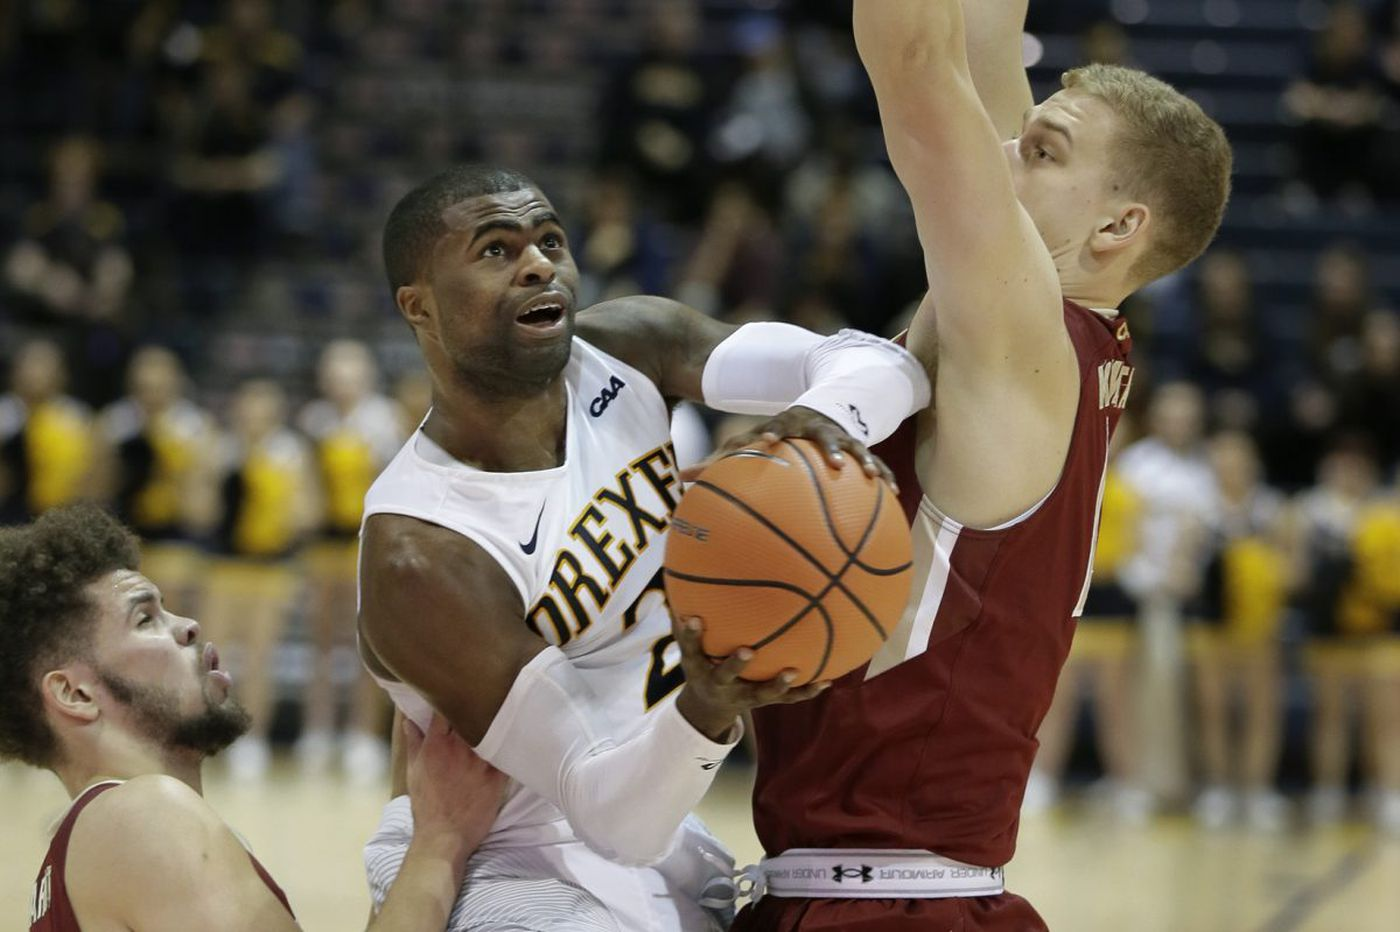 Tramaine Isabell putting up big scoring numbers for Drexel